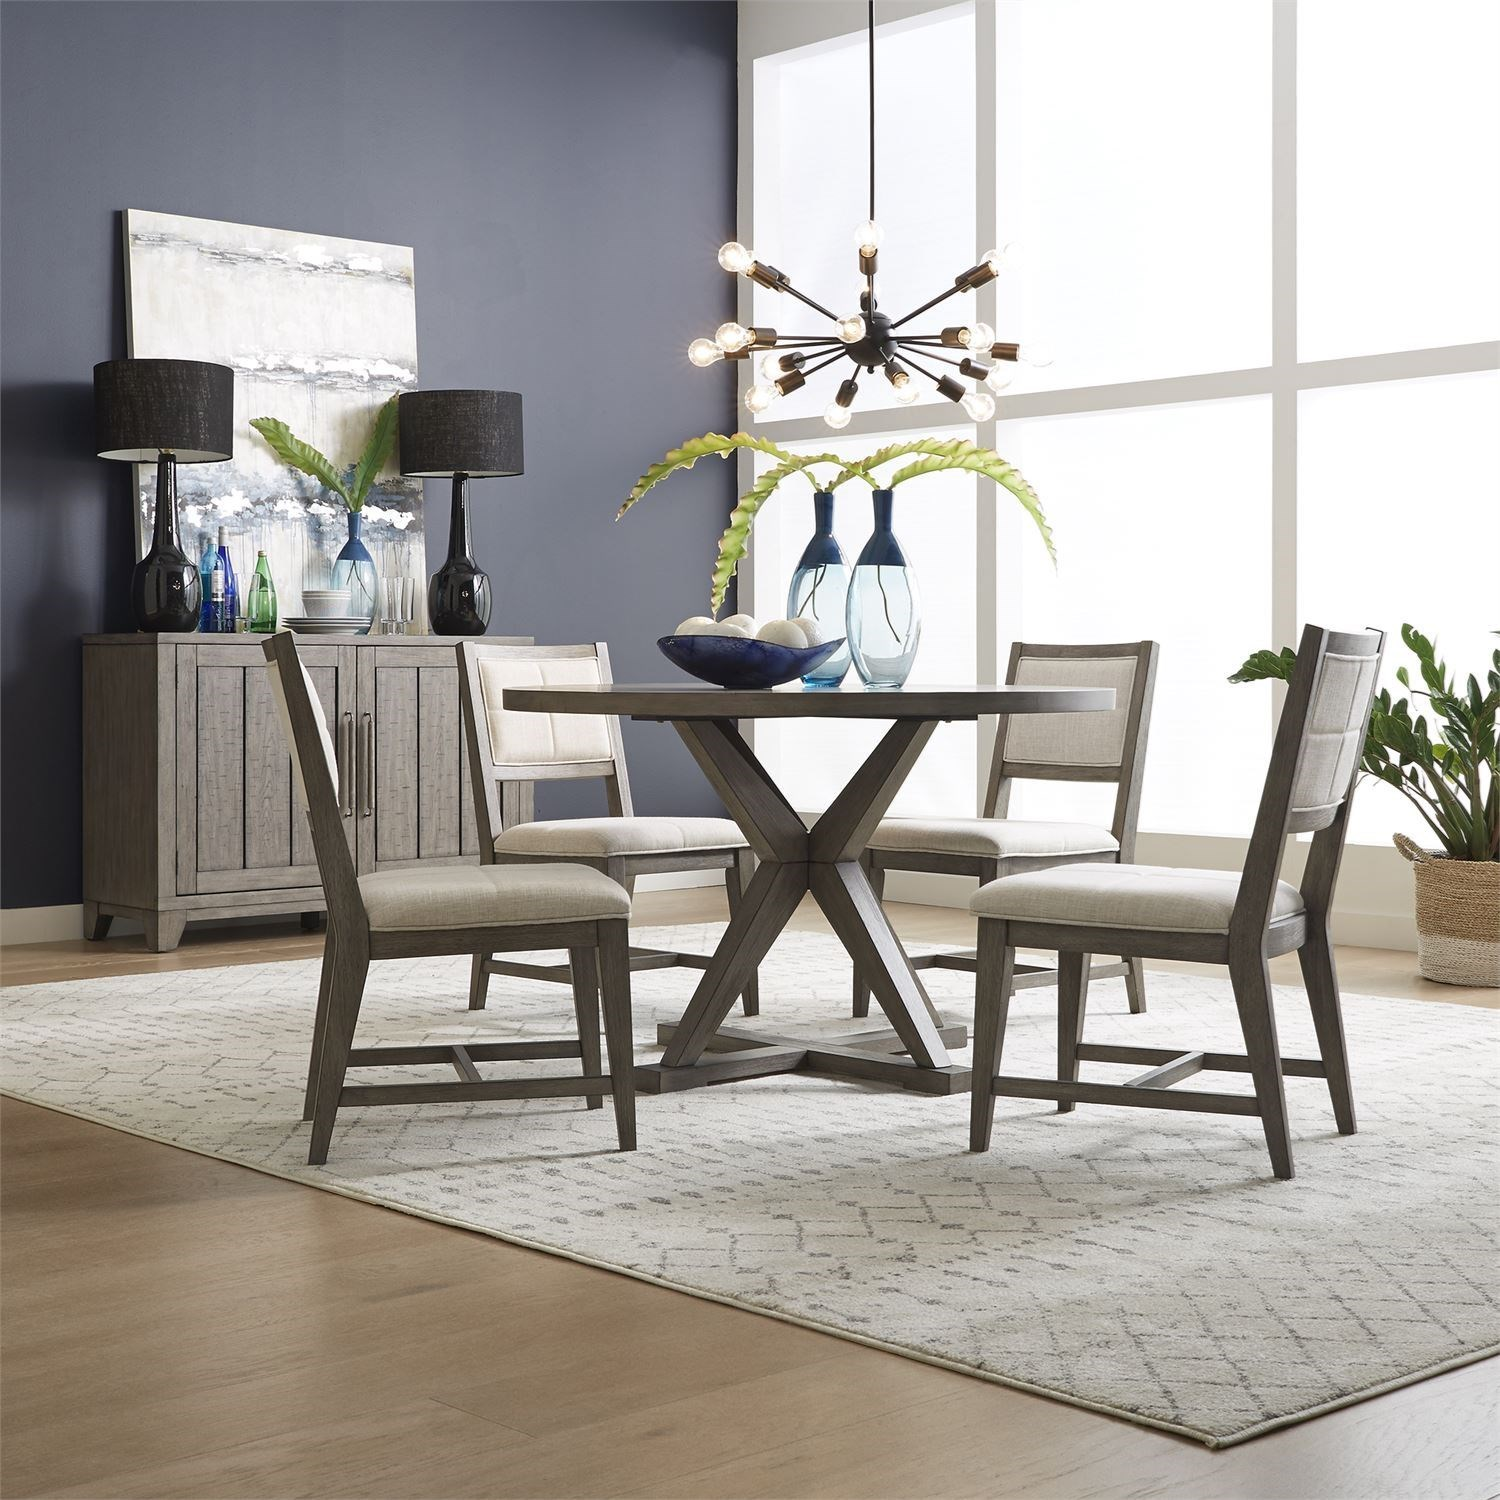 Crescent Creek Casual Dining Room Group by Liberty Furniture at Northeast Factory Direct